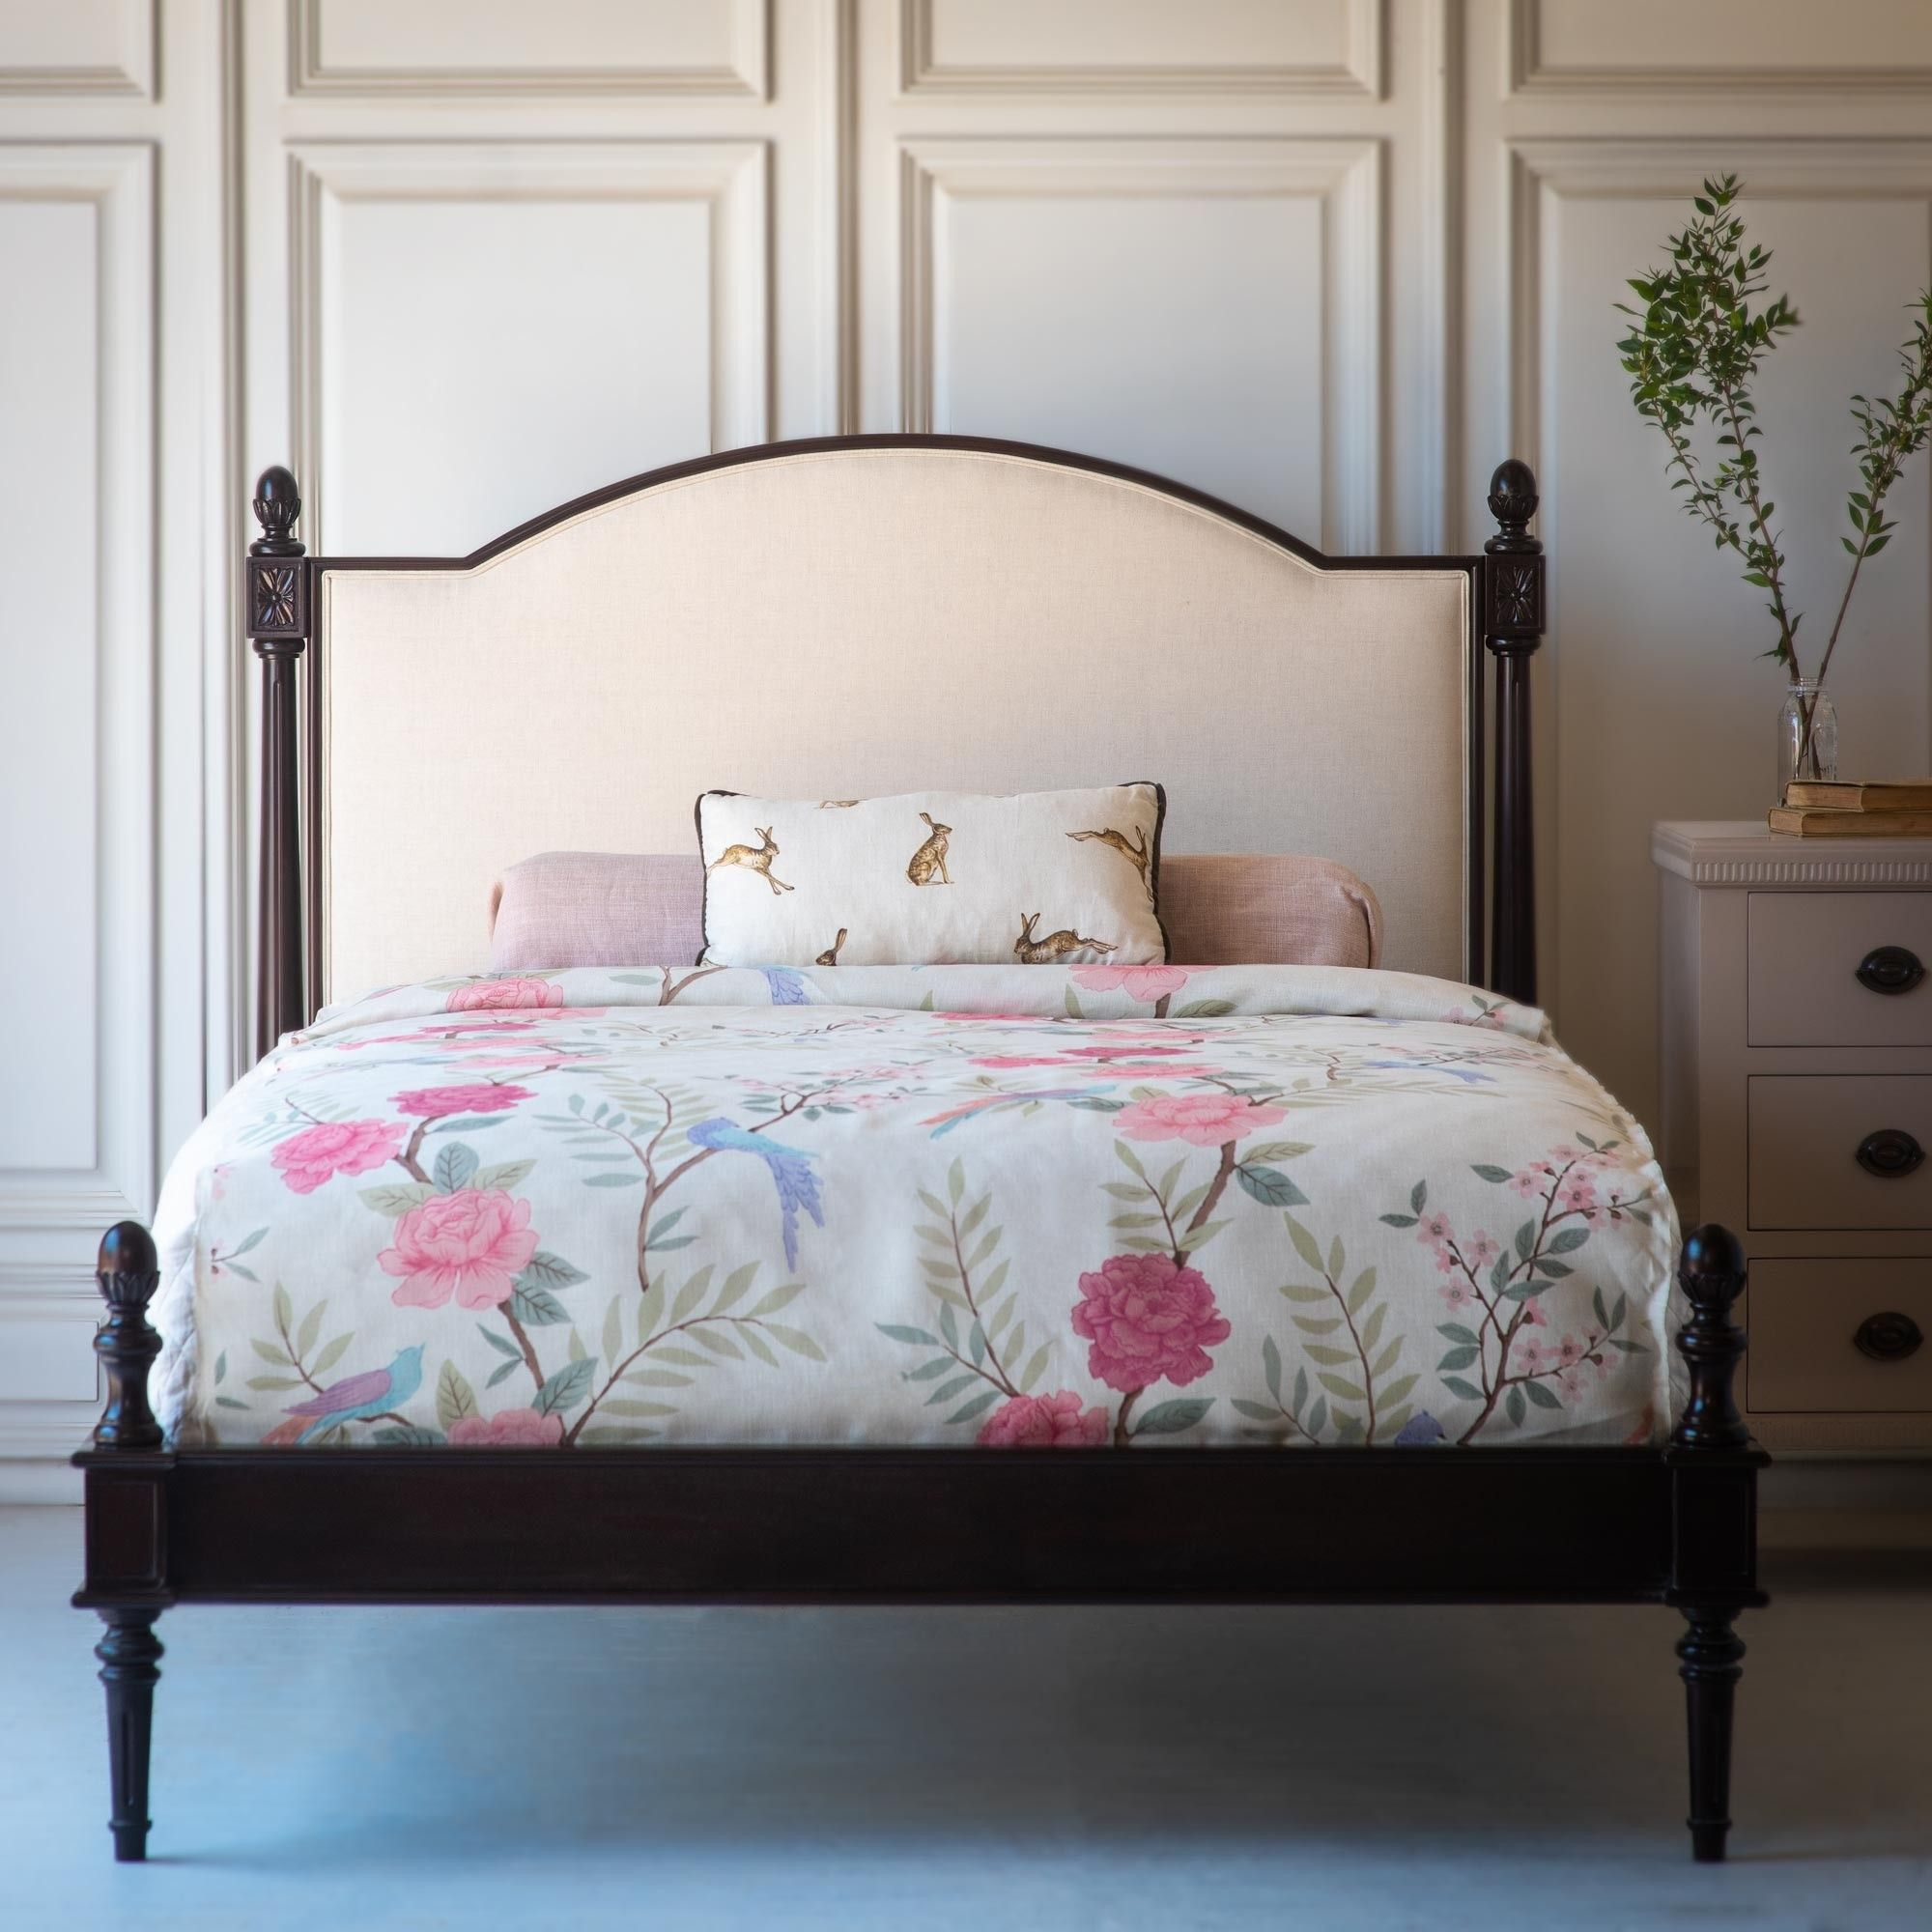 The Freya Upholstered Bed By The Beautiful Bed Company Is French